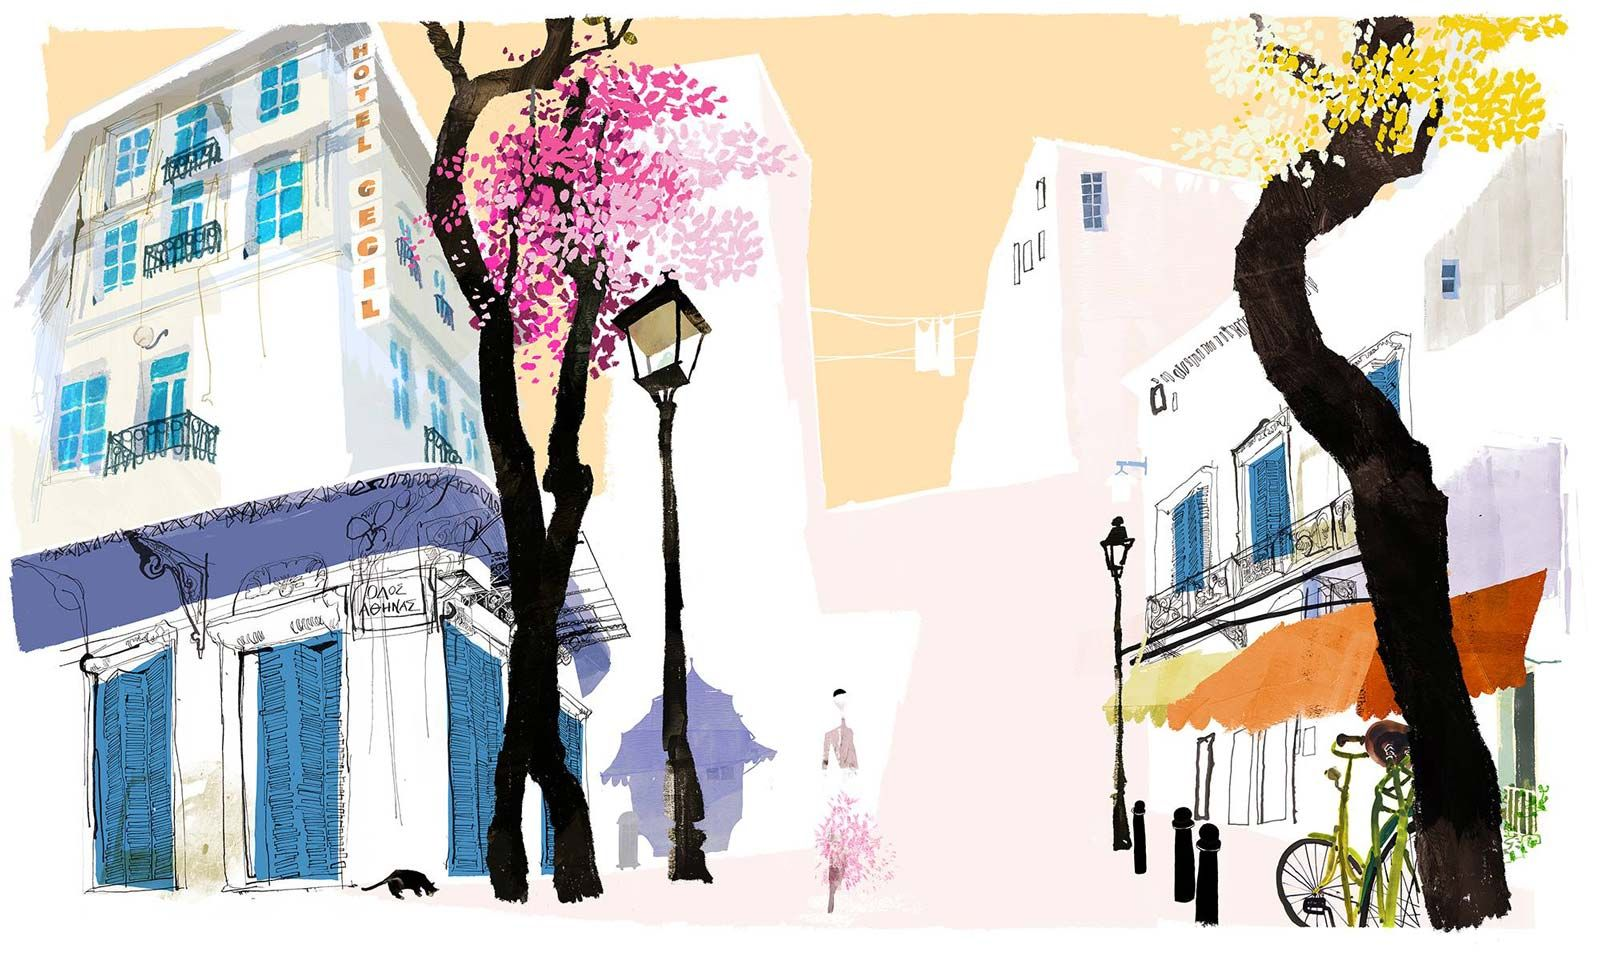 Daniel Egneus Decided To Do These Drawings Of Athens As A